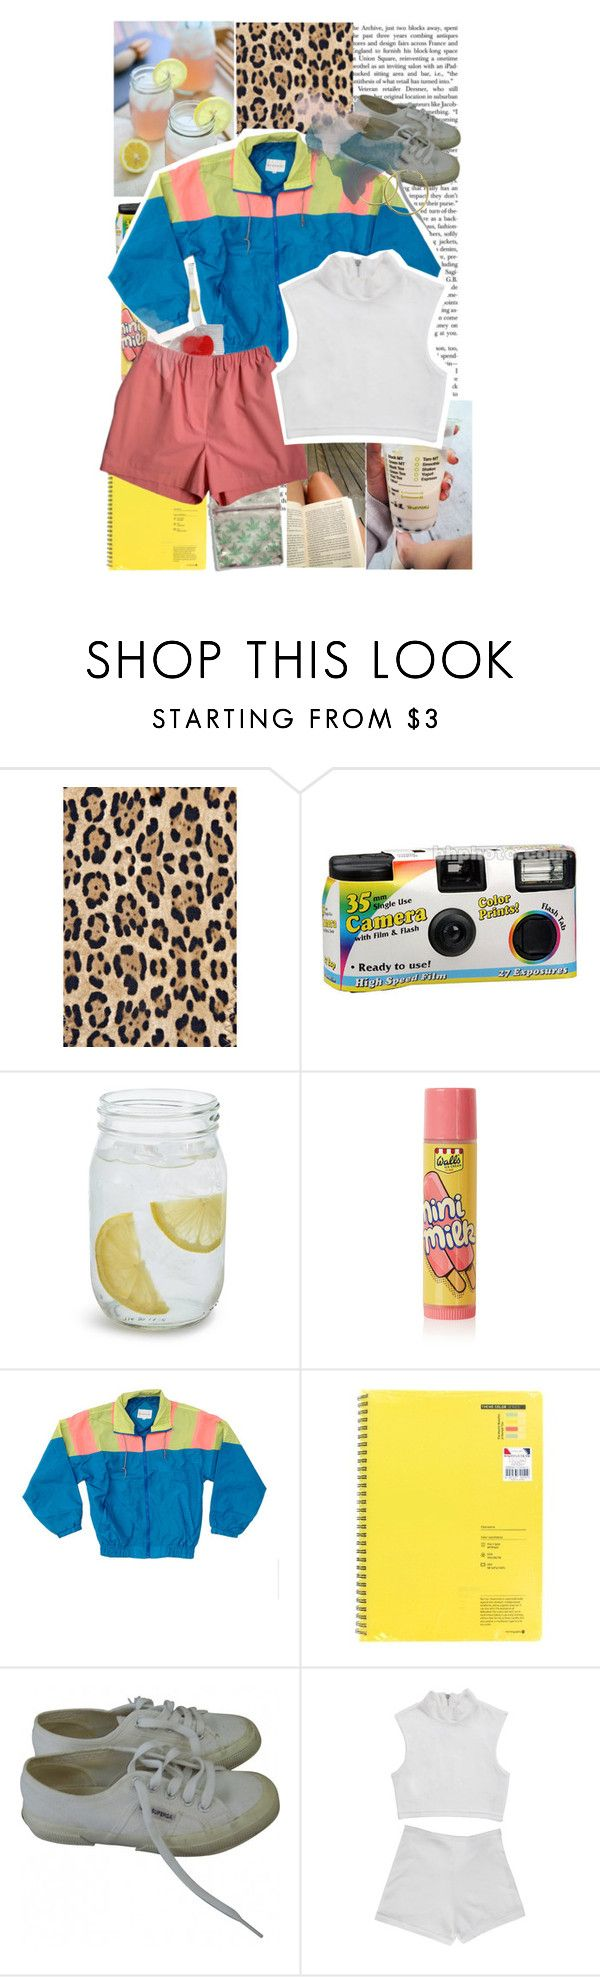 """Louisiana's weather has me d r e a m i n g . . ."" by ony0urside ❤ liked on Polyvore featuring Melissa Odabash, Sur La Table, Topshop, Superga, Summer, yellow and louisiana"